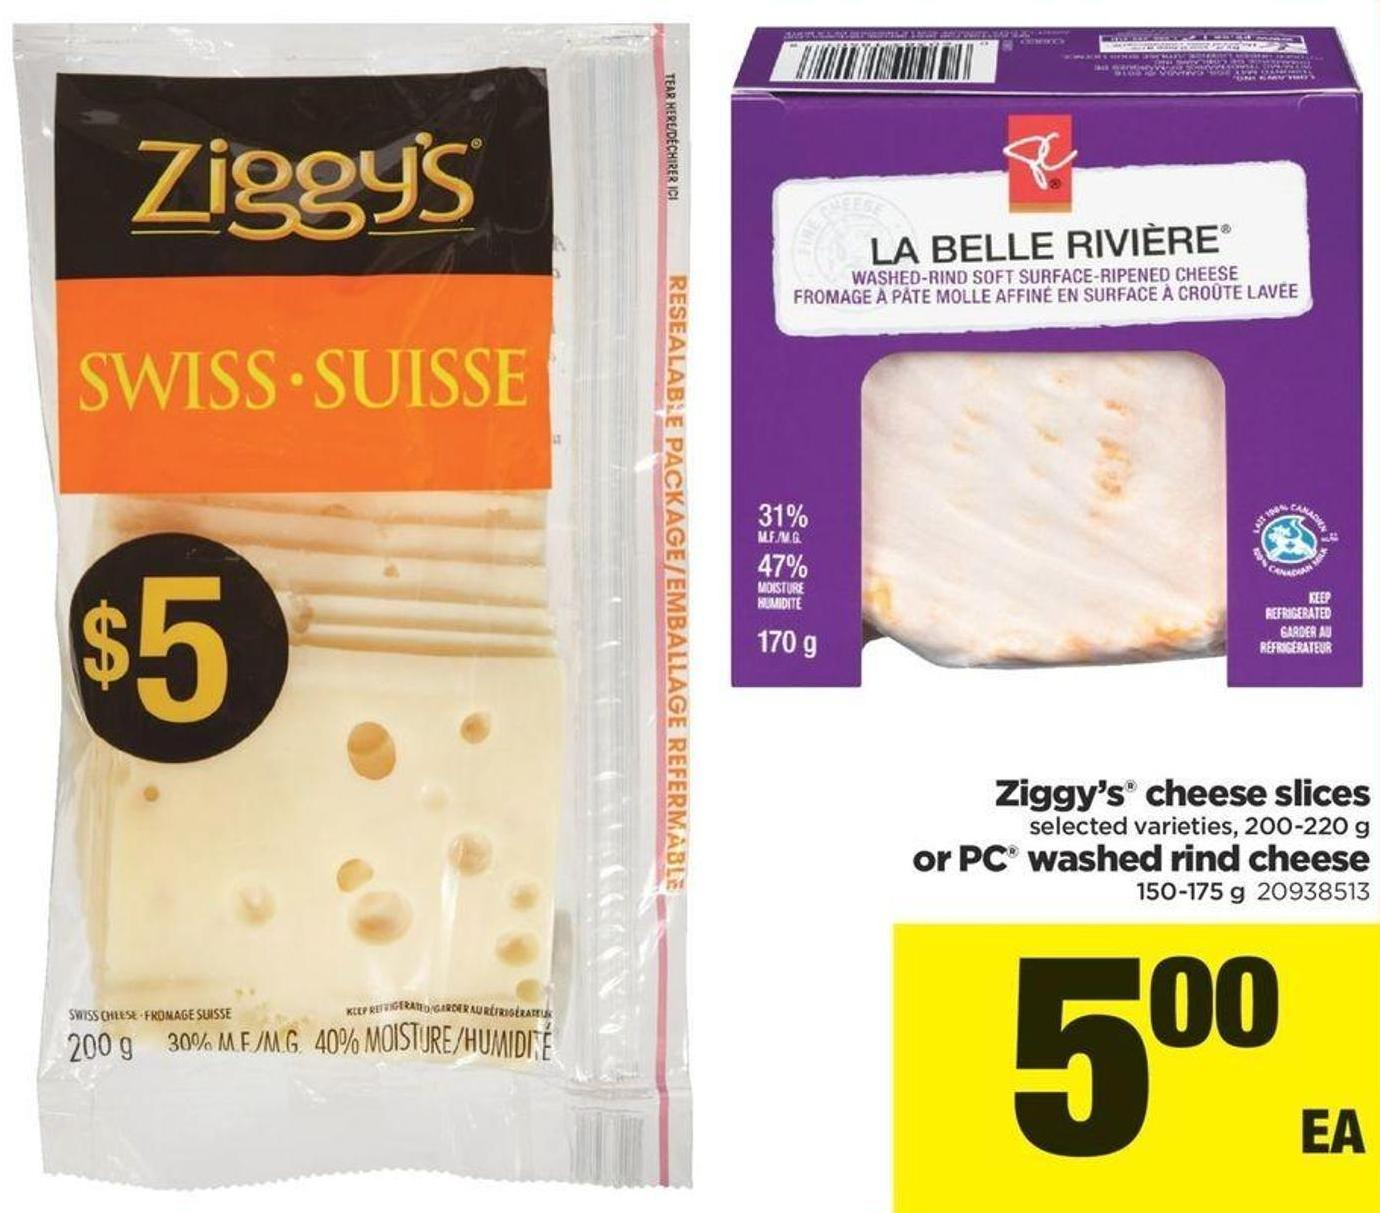 Ziggy's Cheese Slices - 200 220 G Or PC Washed Rind Cheese 150 175 G